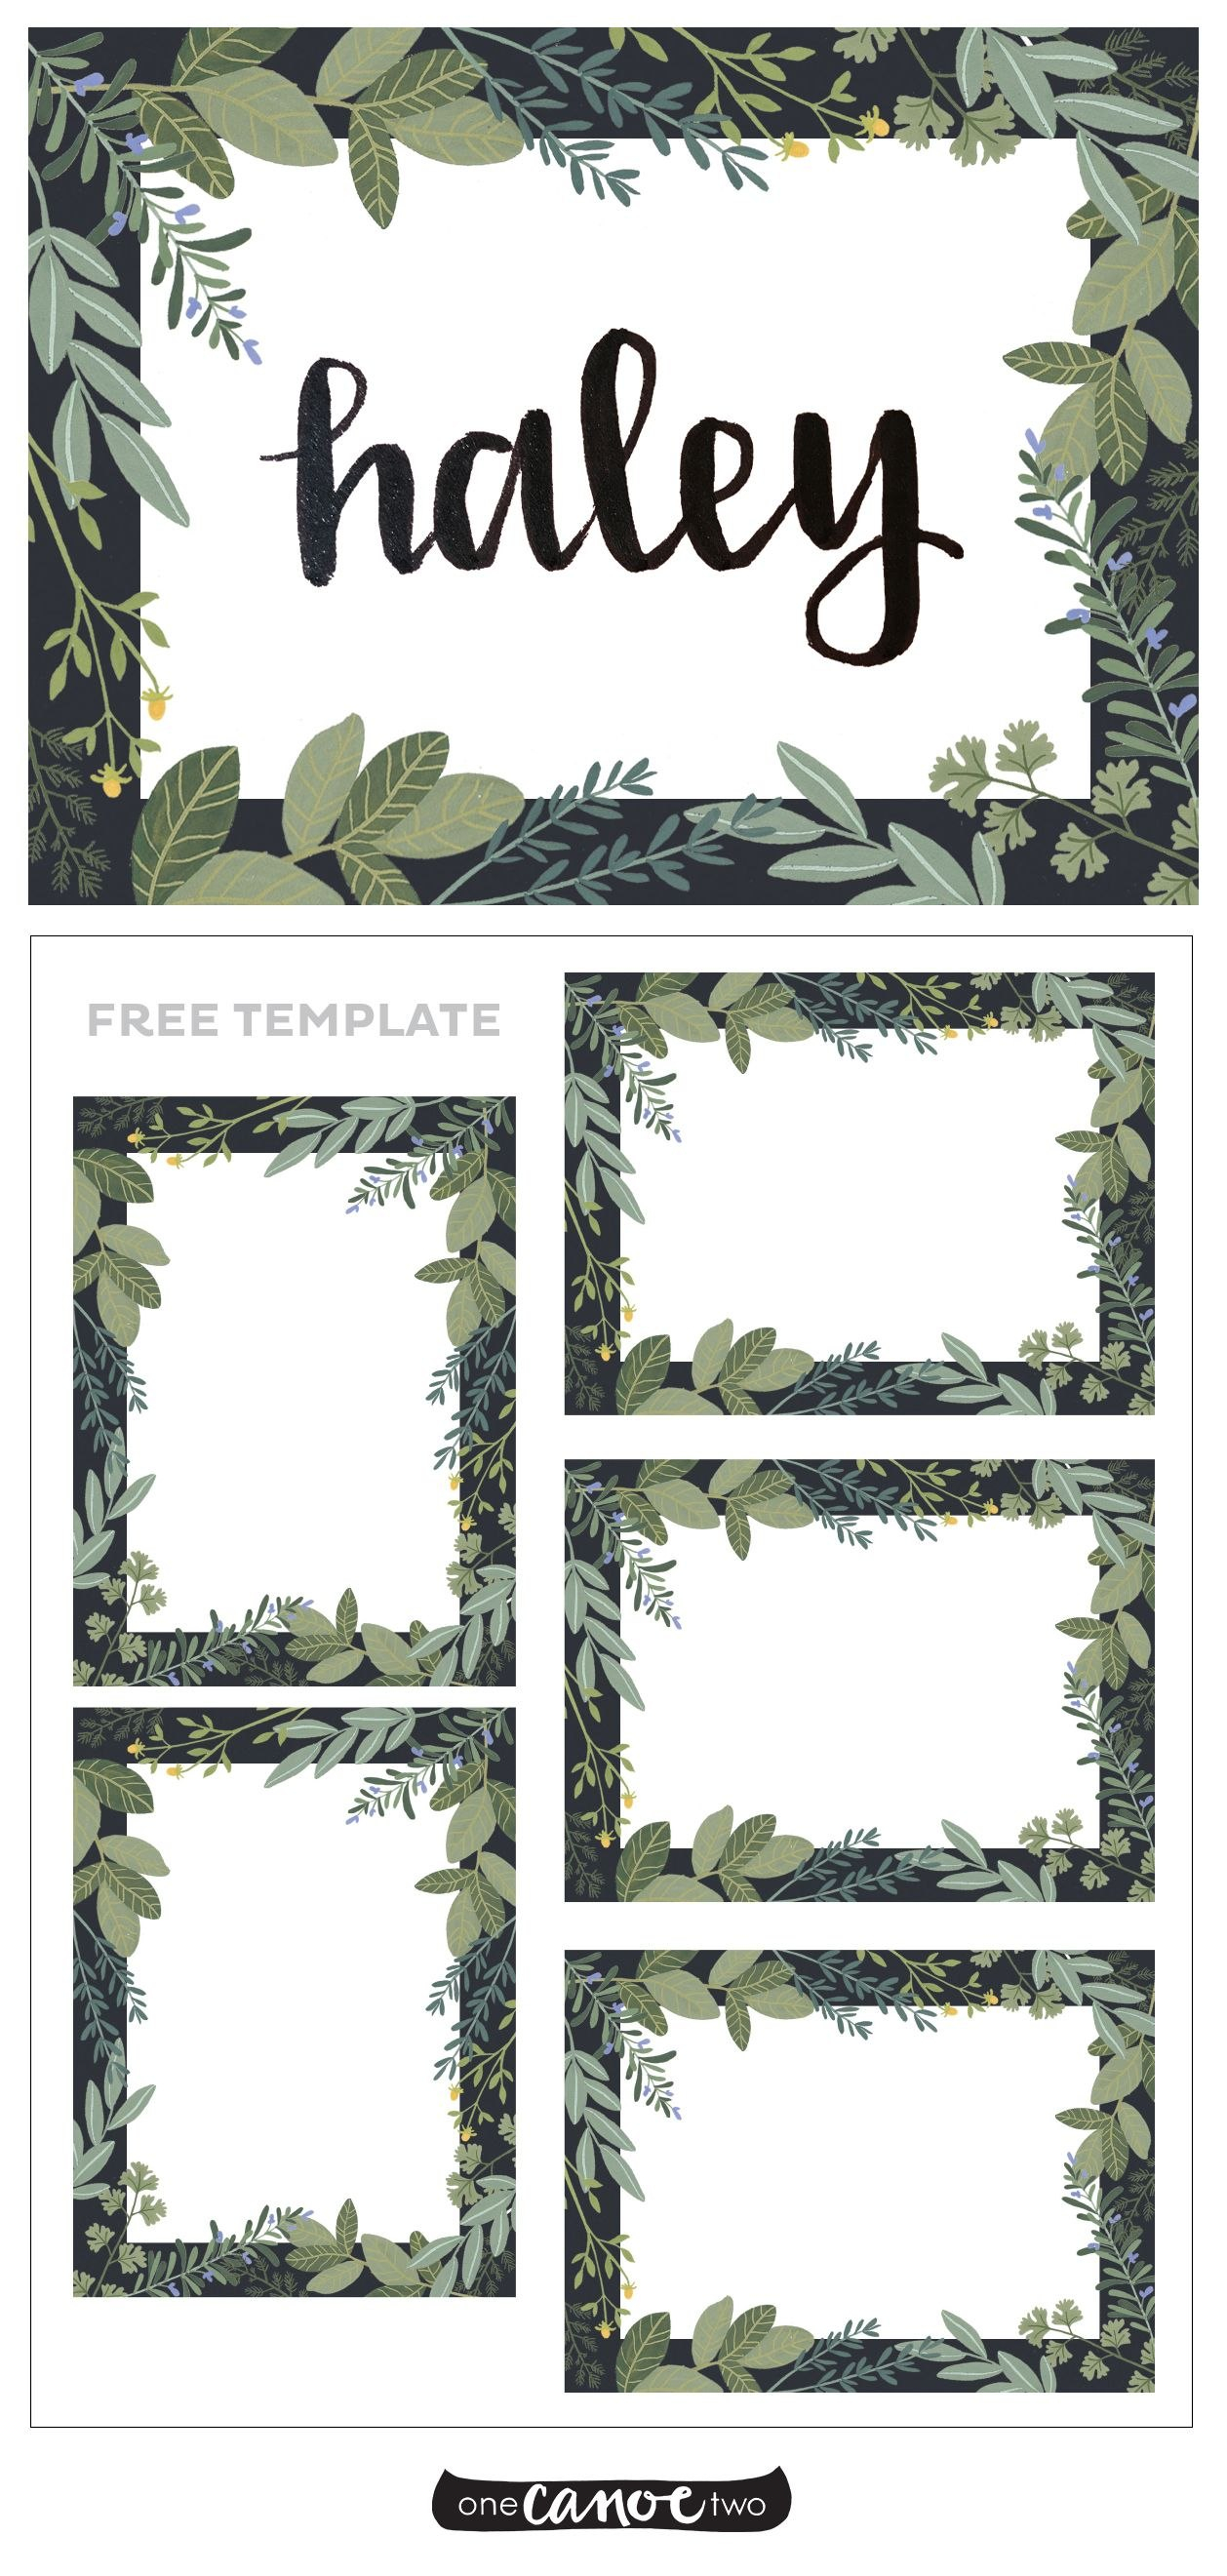 Free Place Card Template Outstanding Ideas Printable Table Word Intended For Free Place Card Templates 6 Per Page